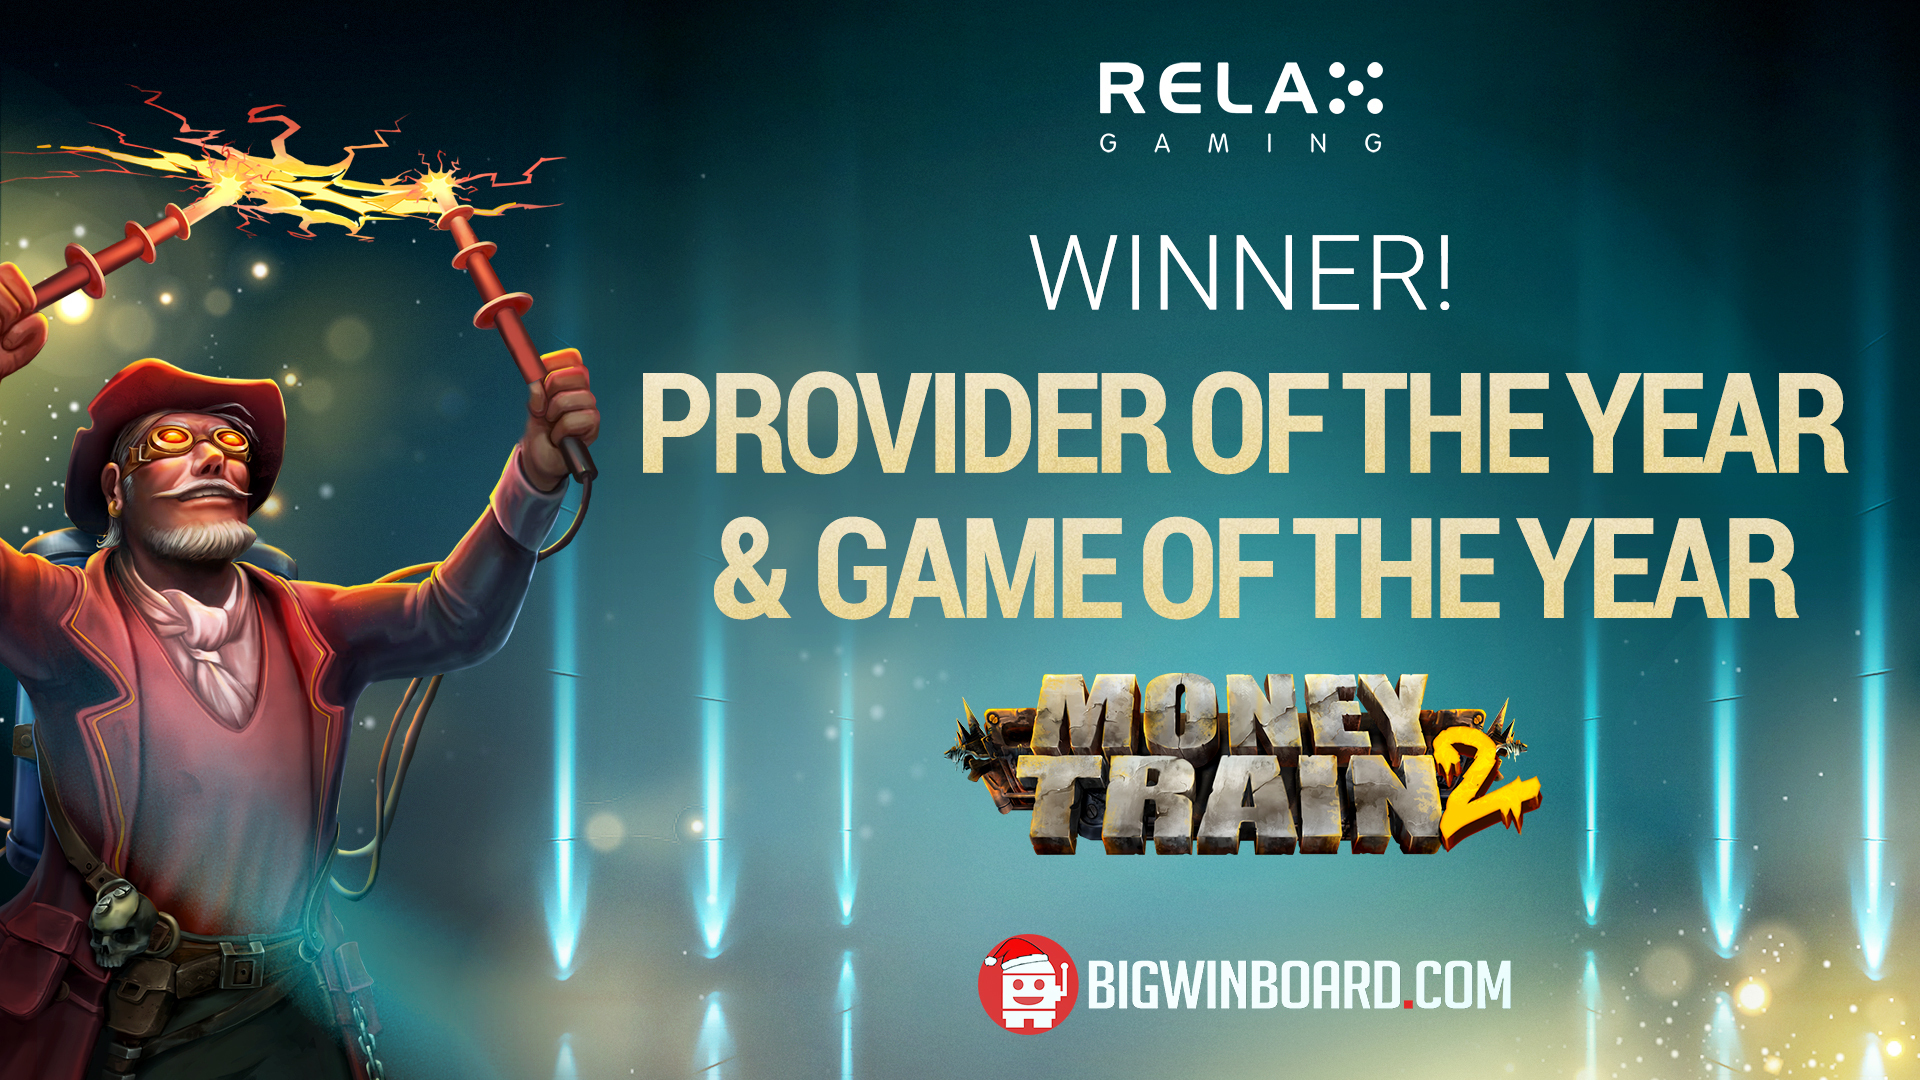 Relax wins Bigwinboard's Game of the Year & Provider of the Year!